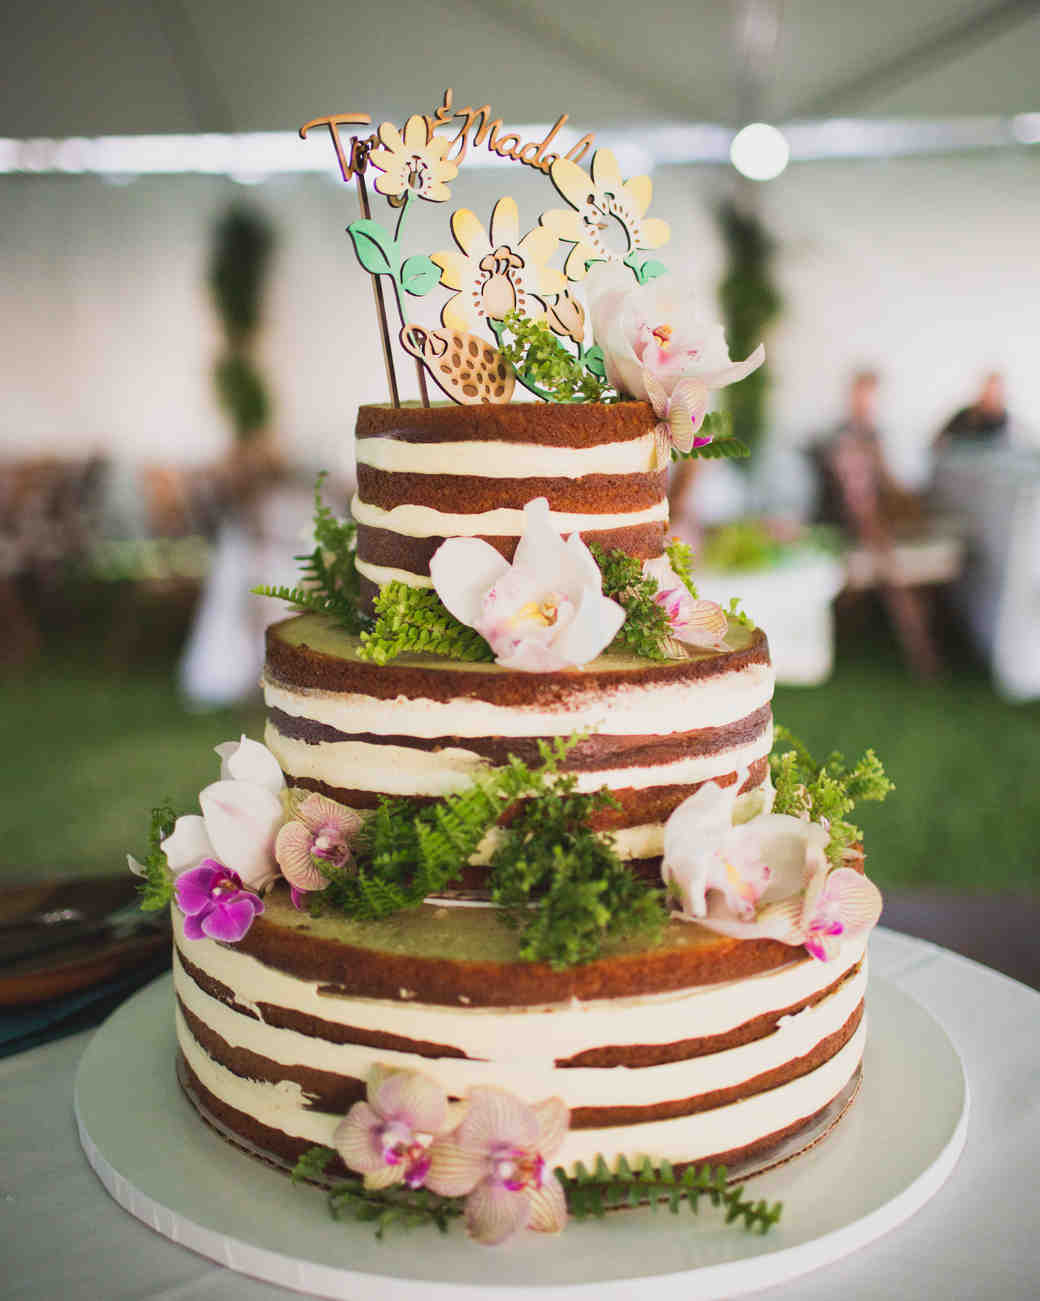 44 Naked Cakes For Your Wedding  Martha Stewart Weddings-9986